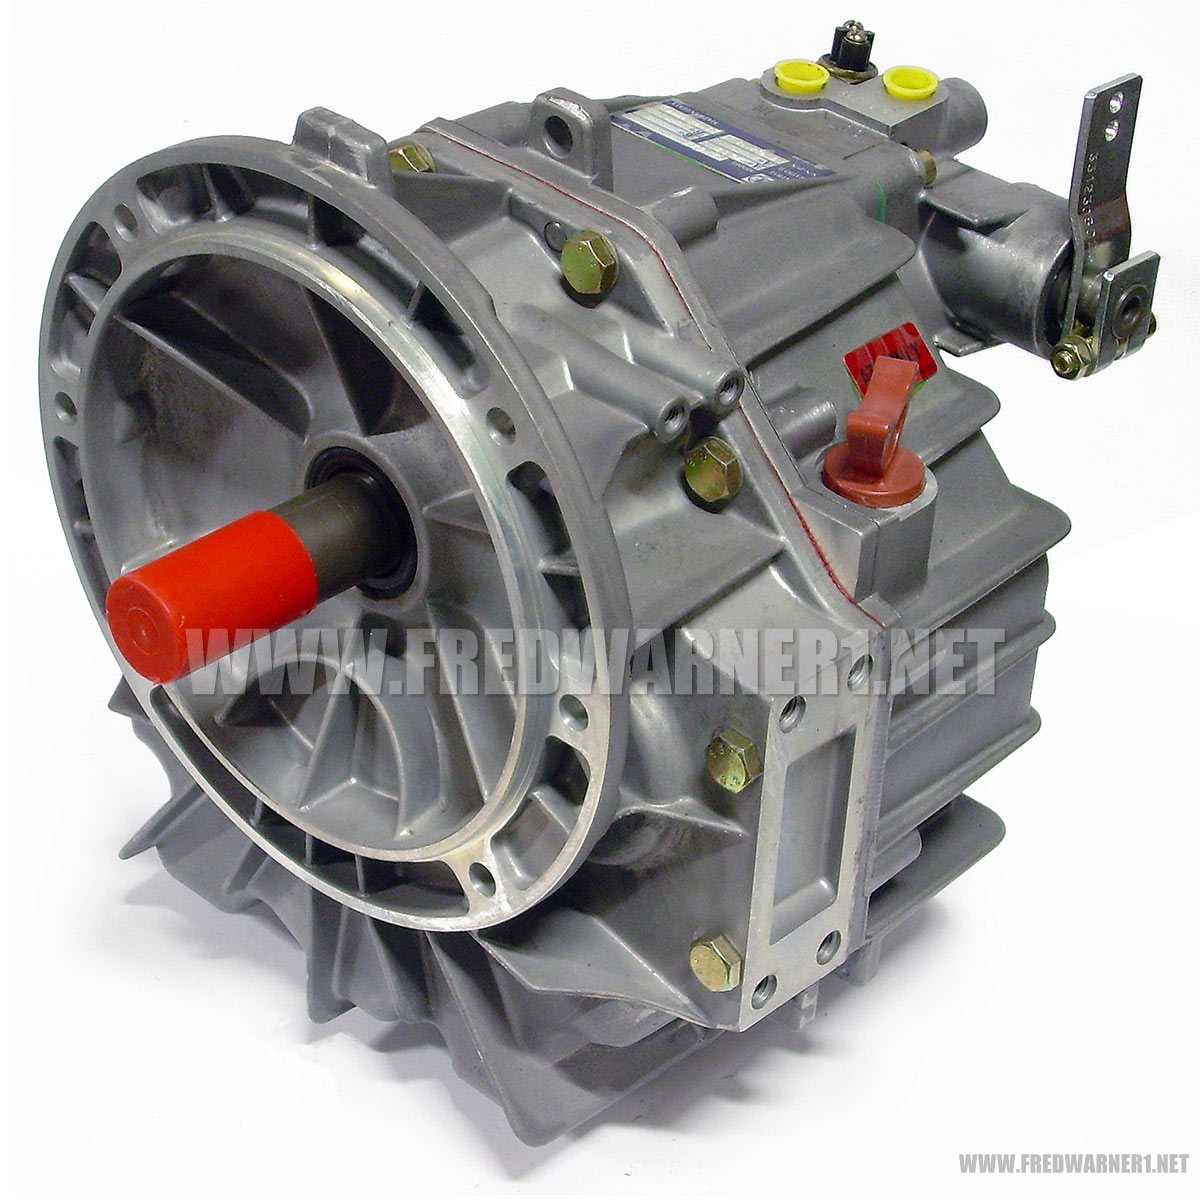 ZF 45A 2.4:1 Marine Boat Transmission Gearbox Hurth HSW450A 3311001017